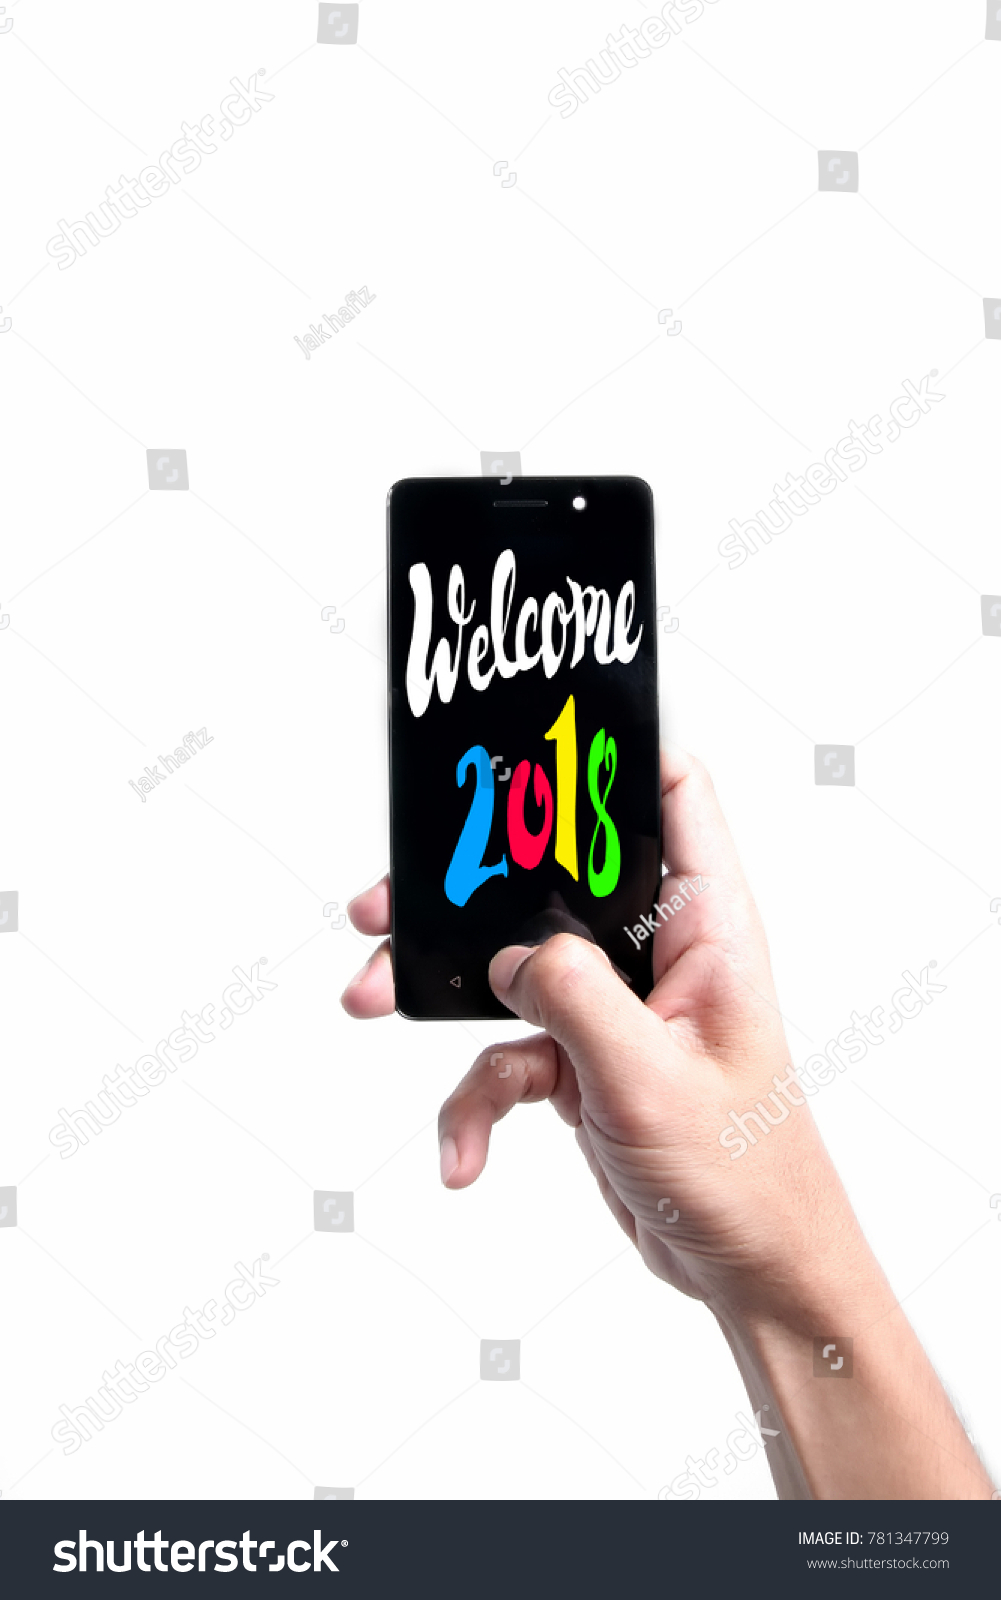 Welcome 2018 Quote With Man Holding Smartphone Background.